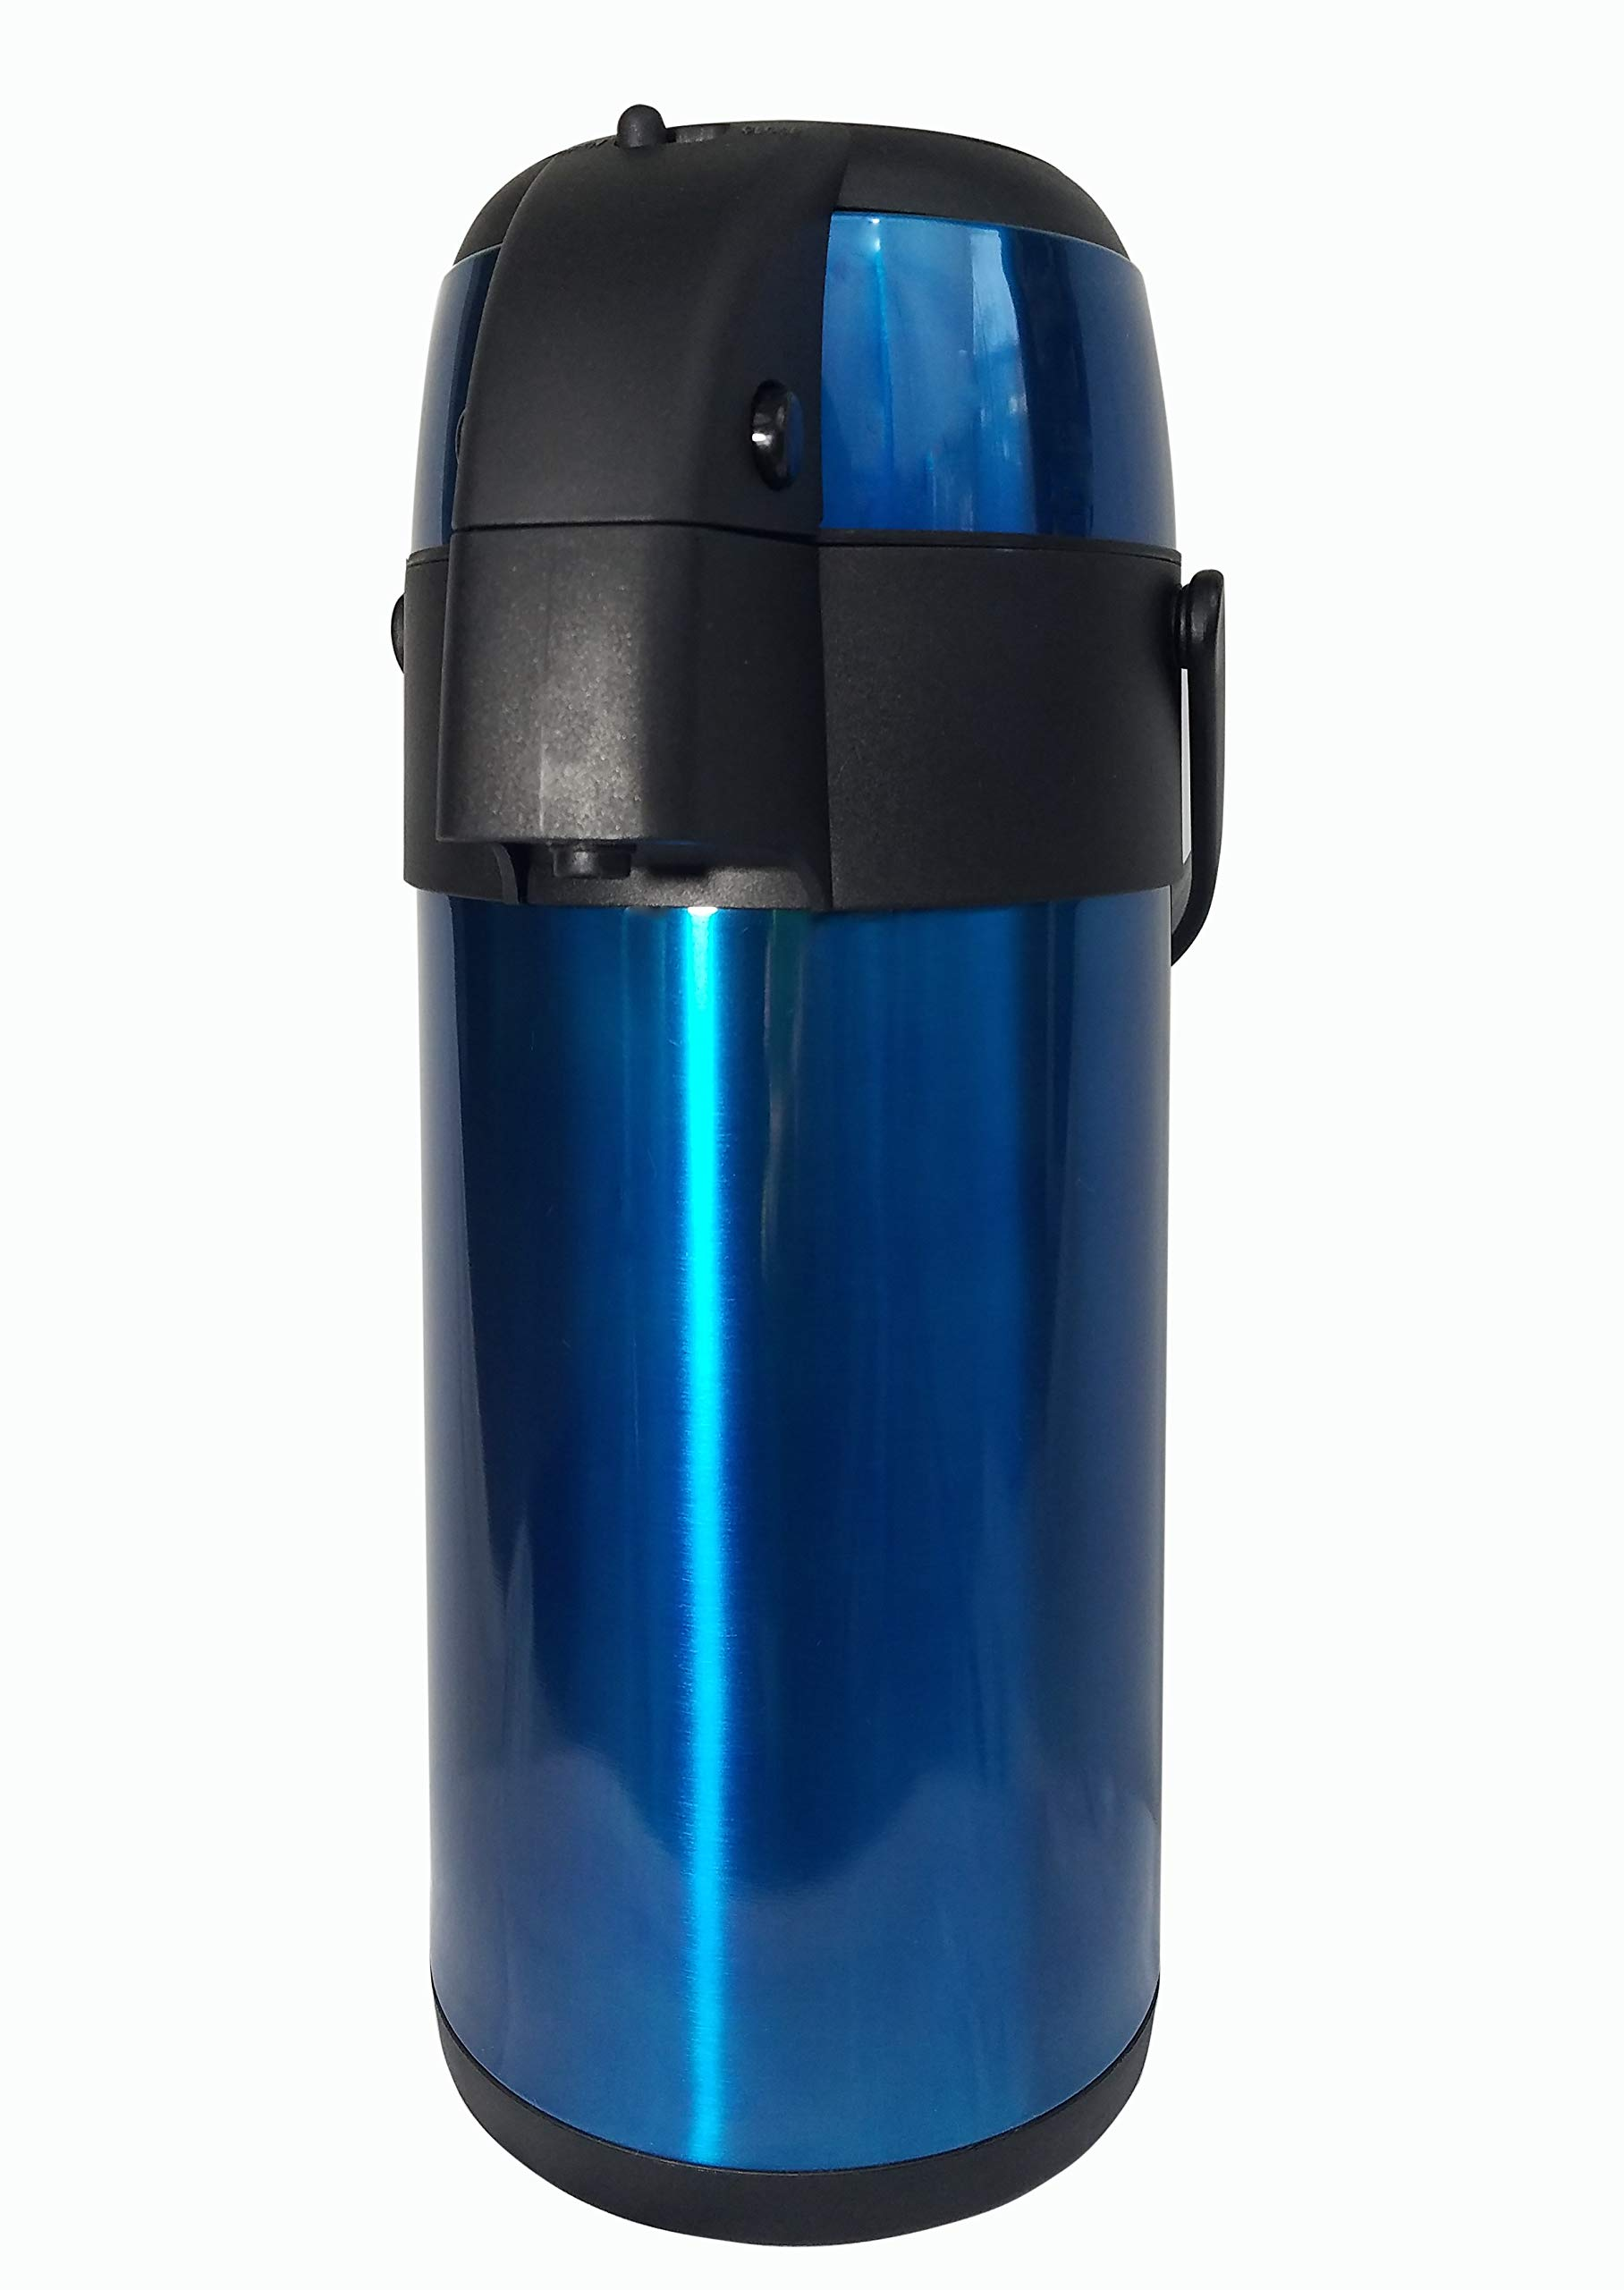 TherMite Airpot Coffee/Beverage Dispenser with Pump. [Midnight Blue], 3 Liter (102 oz), Insulated Double-Walled Stainless Steel Thermal Carafe to Keep Drinks Hot or Cold by Thermite